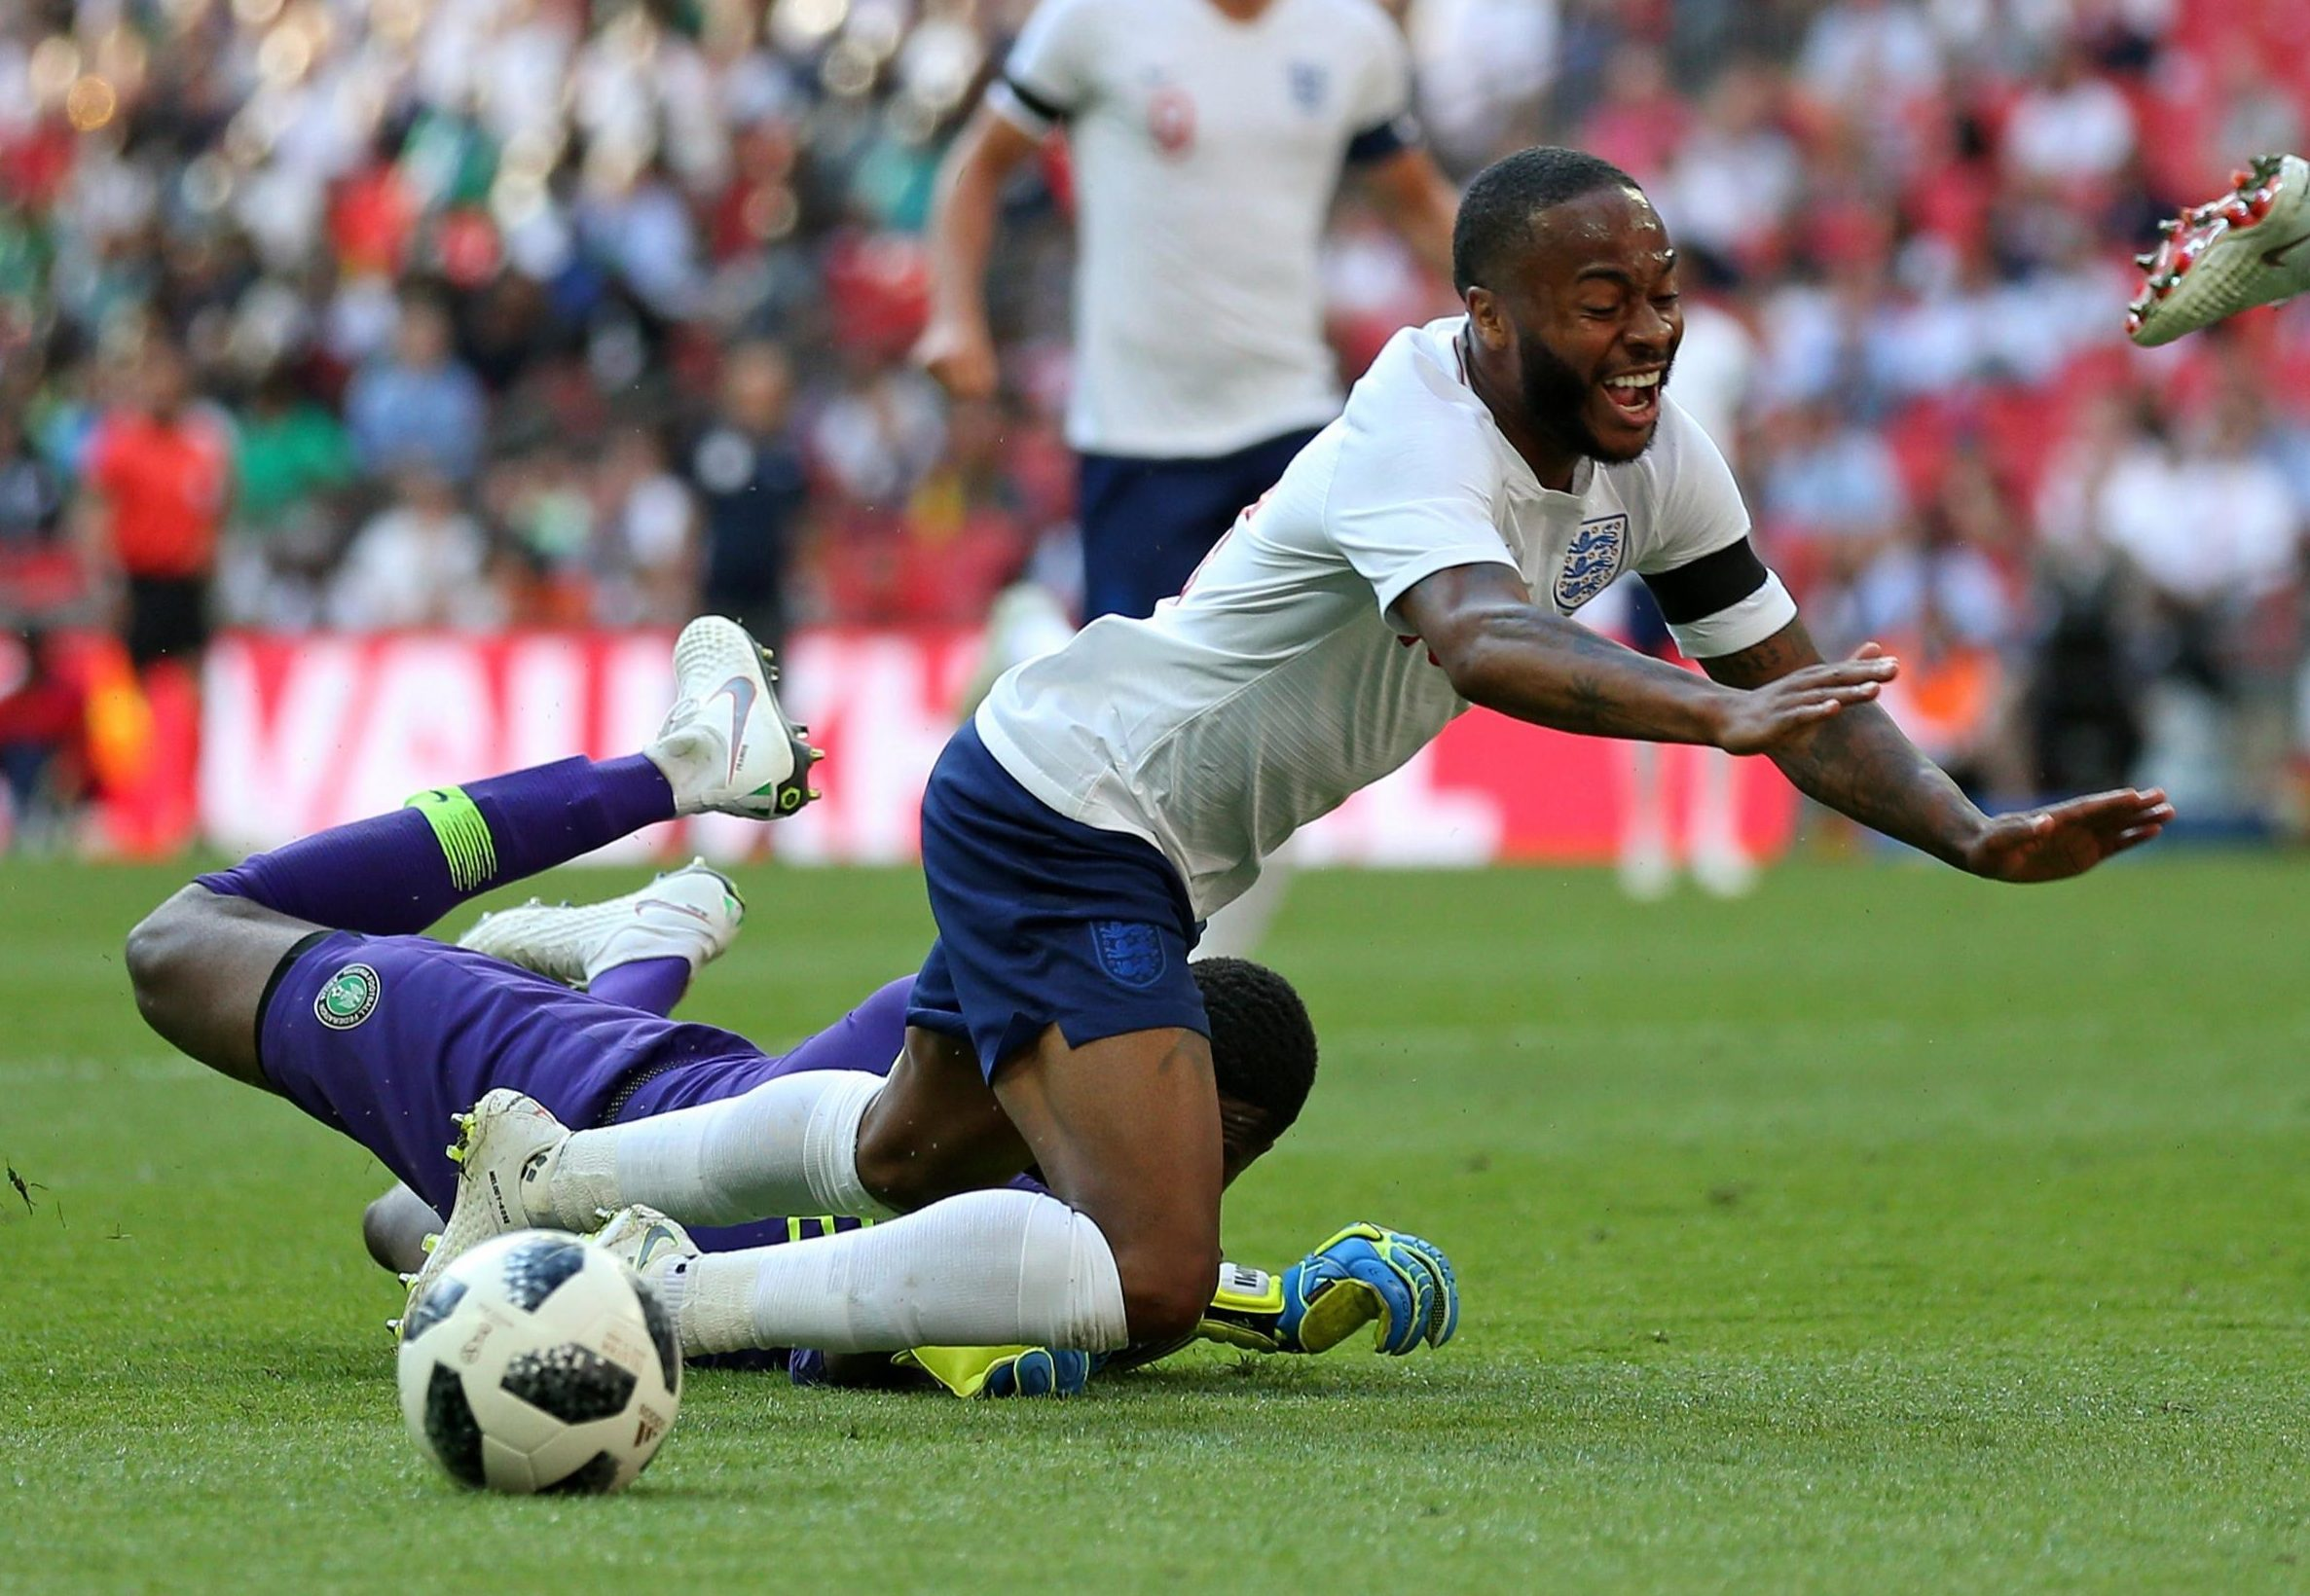 Raheem Sterling was booked for diving at Wembley on Saturday